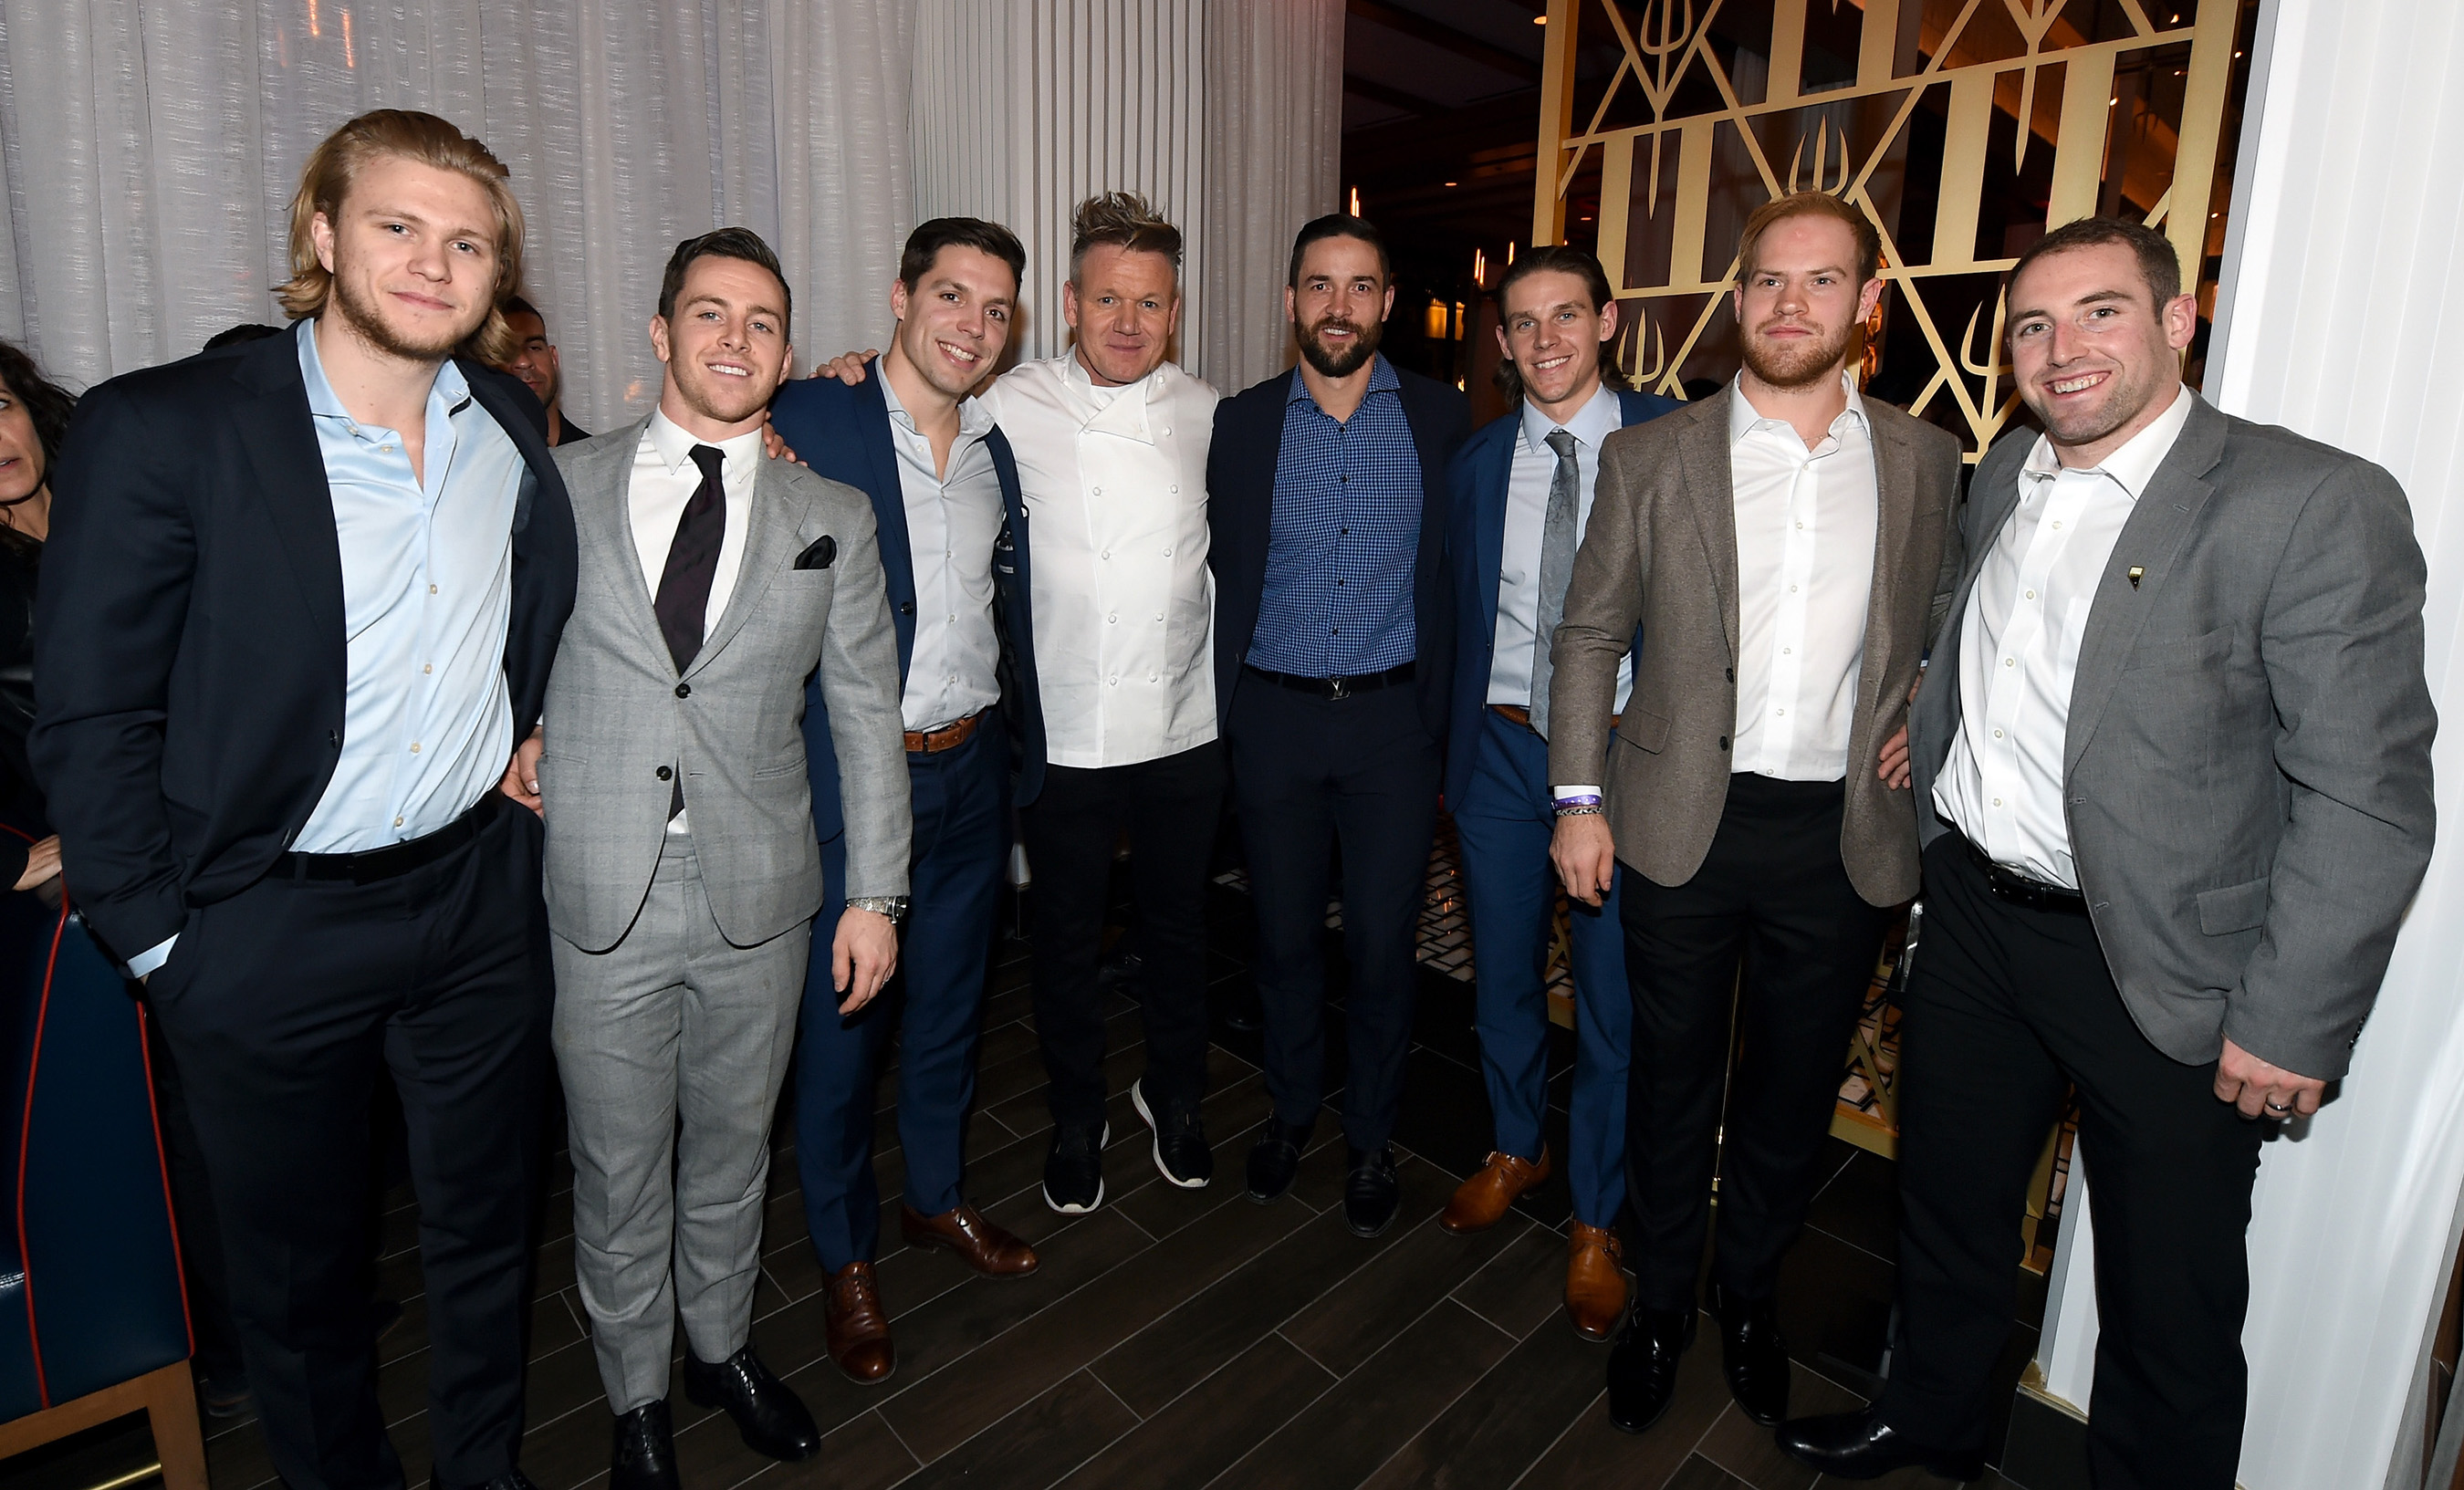 NHL players from Vegas Golden Knights team join Chef Gordon Ramsay to celebrate the grand opening of the world's first Gordon Ramsay HELL'S KITCHEN restaurant at Caesars Palace in Las Vegas.